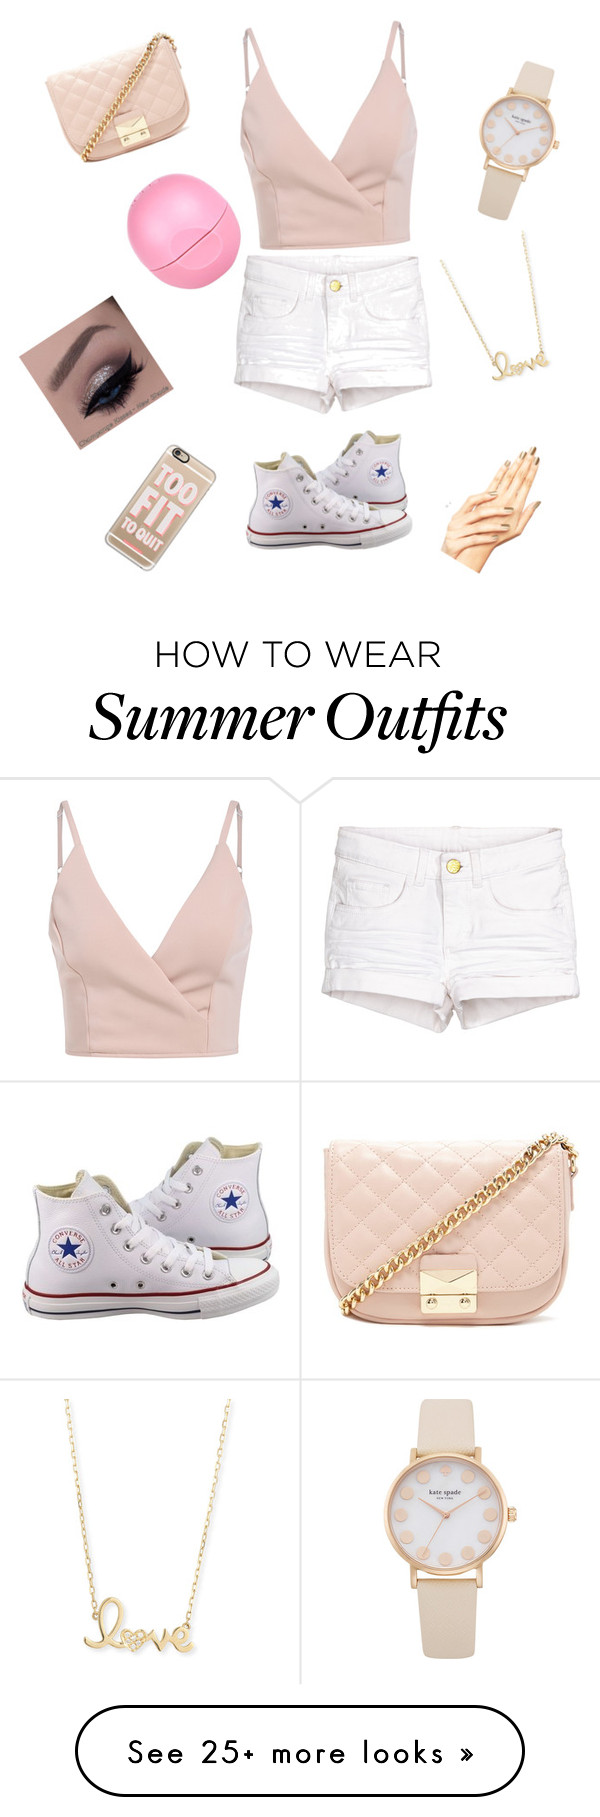 """Summer outfit"" by morganmcl on Polyvore featuring Converse, Forever 21, Sydney Evan, River Island and Casetify"